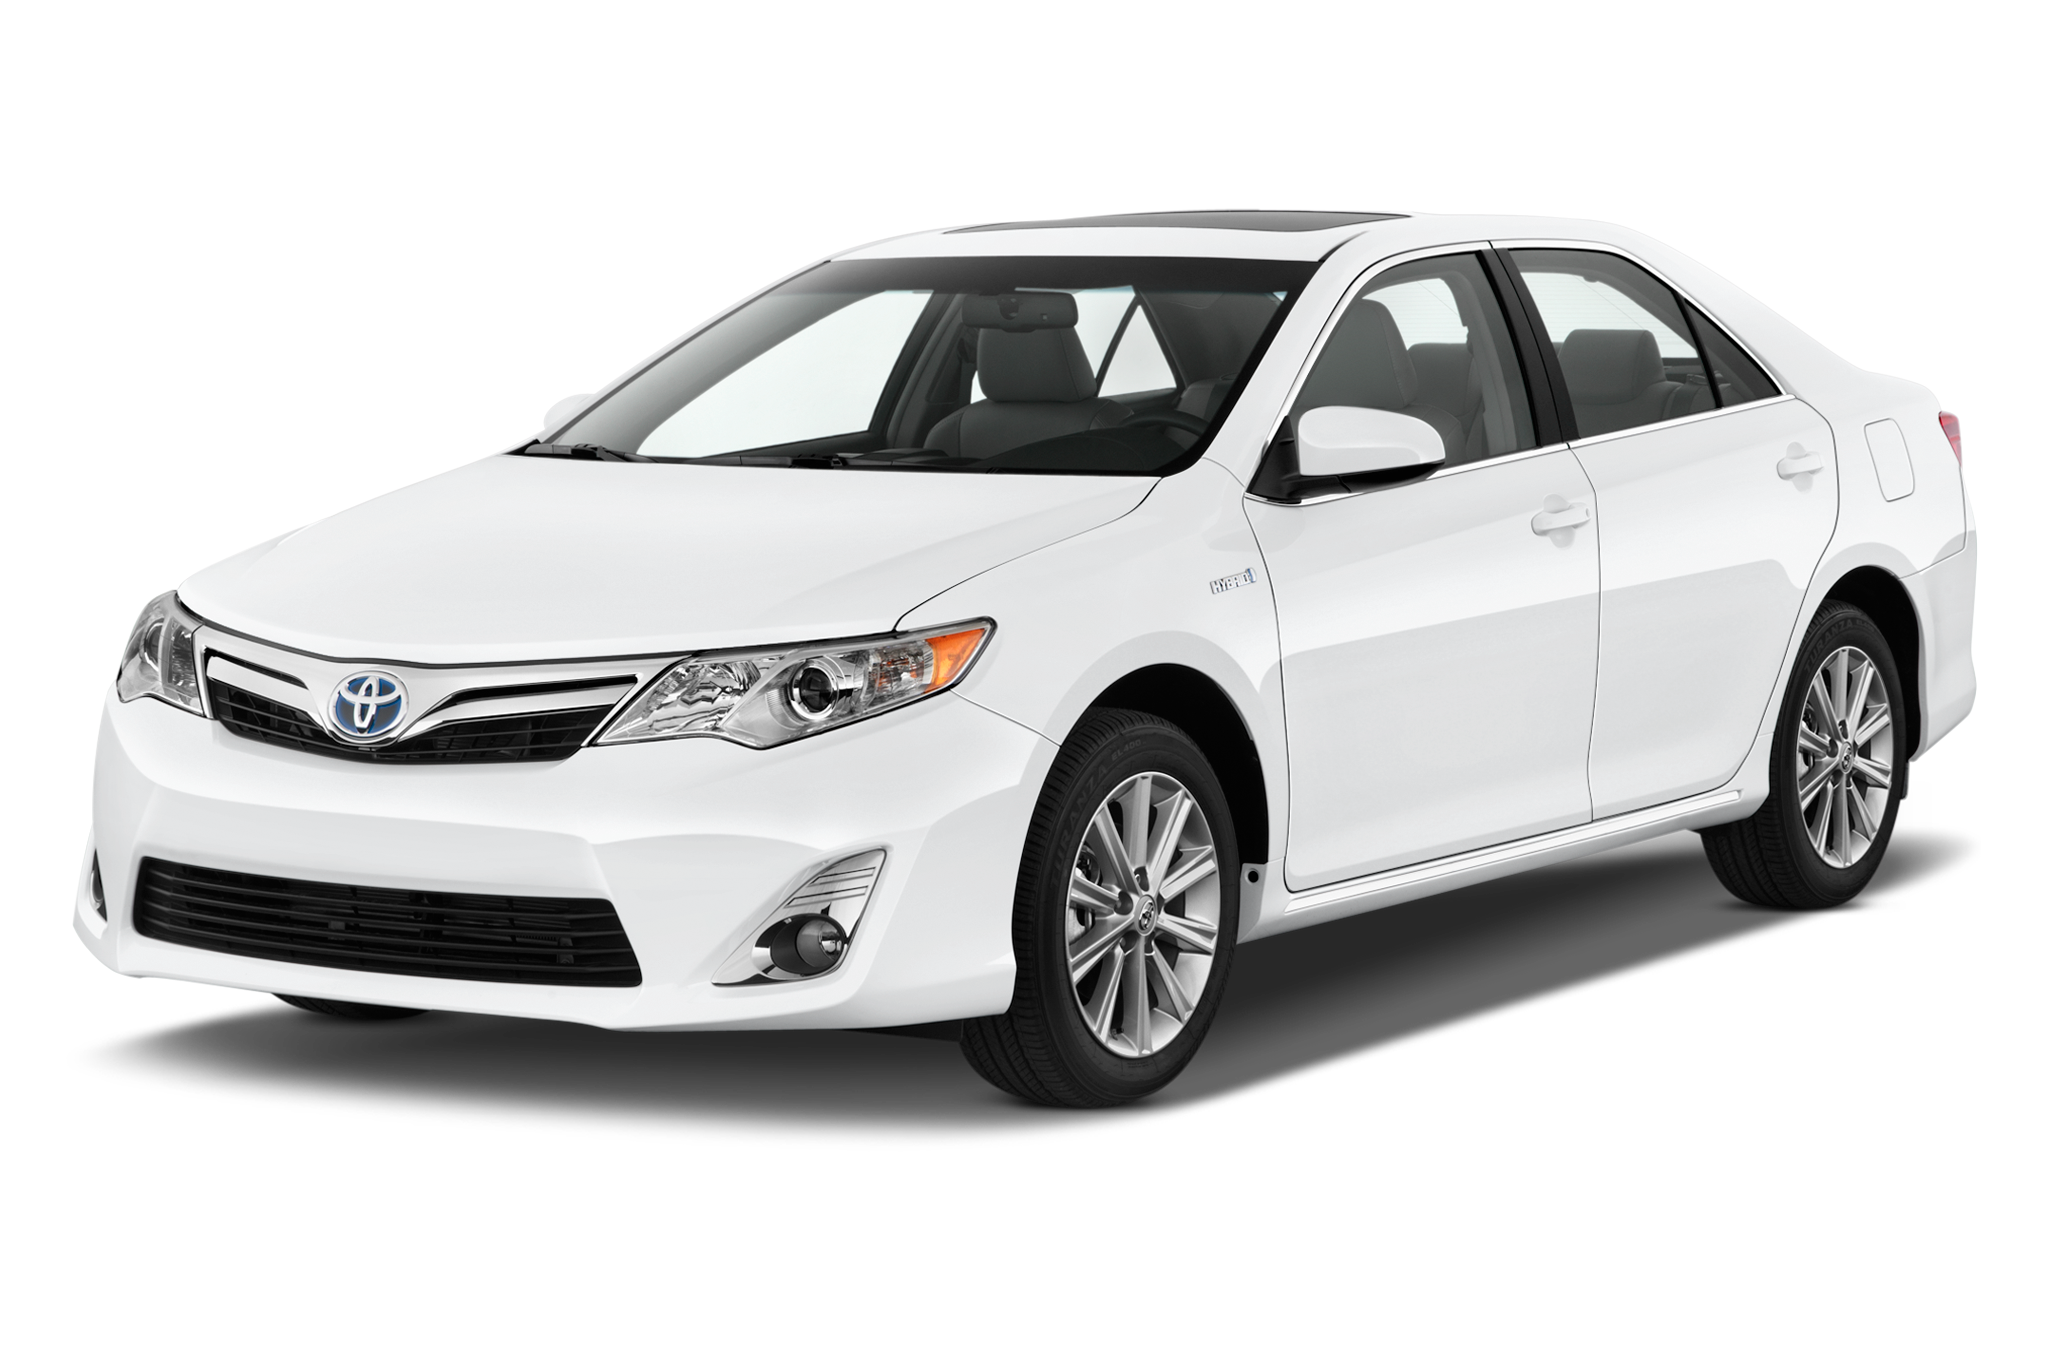 price specials header best owned suv for cars car trucks certified payment corolla portland camry lowest in used our suvs sale cpo pre certifed truck toyota salem of